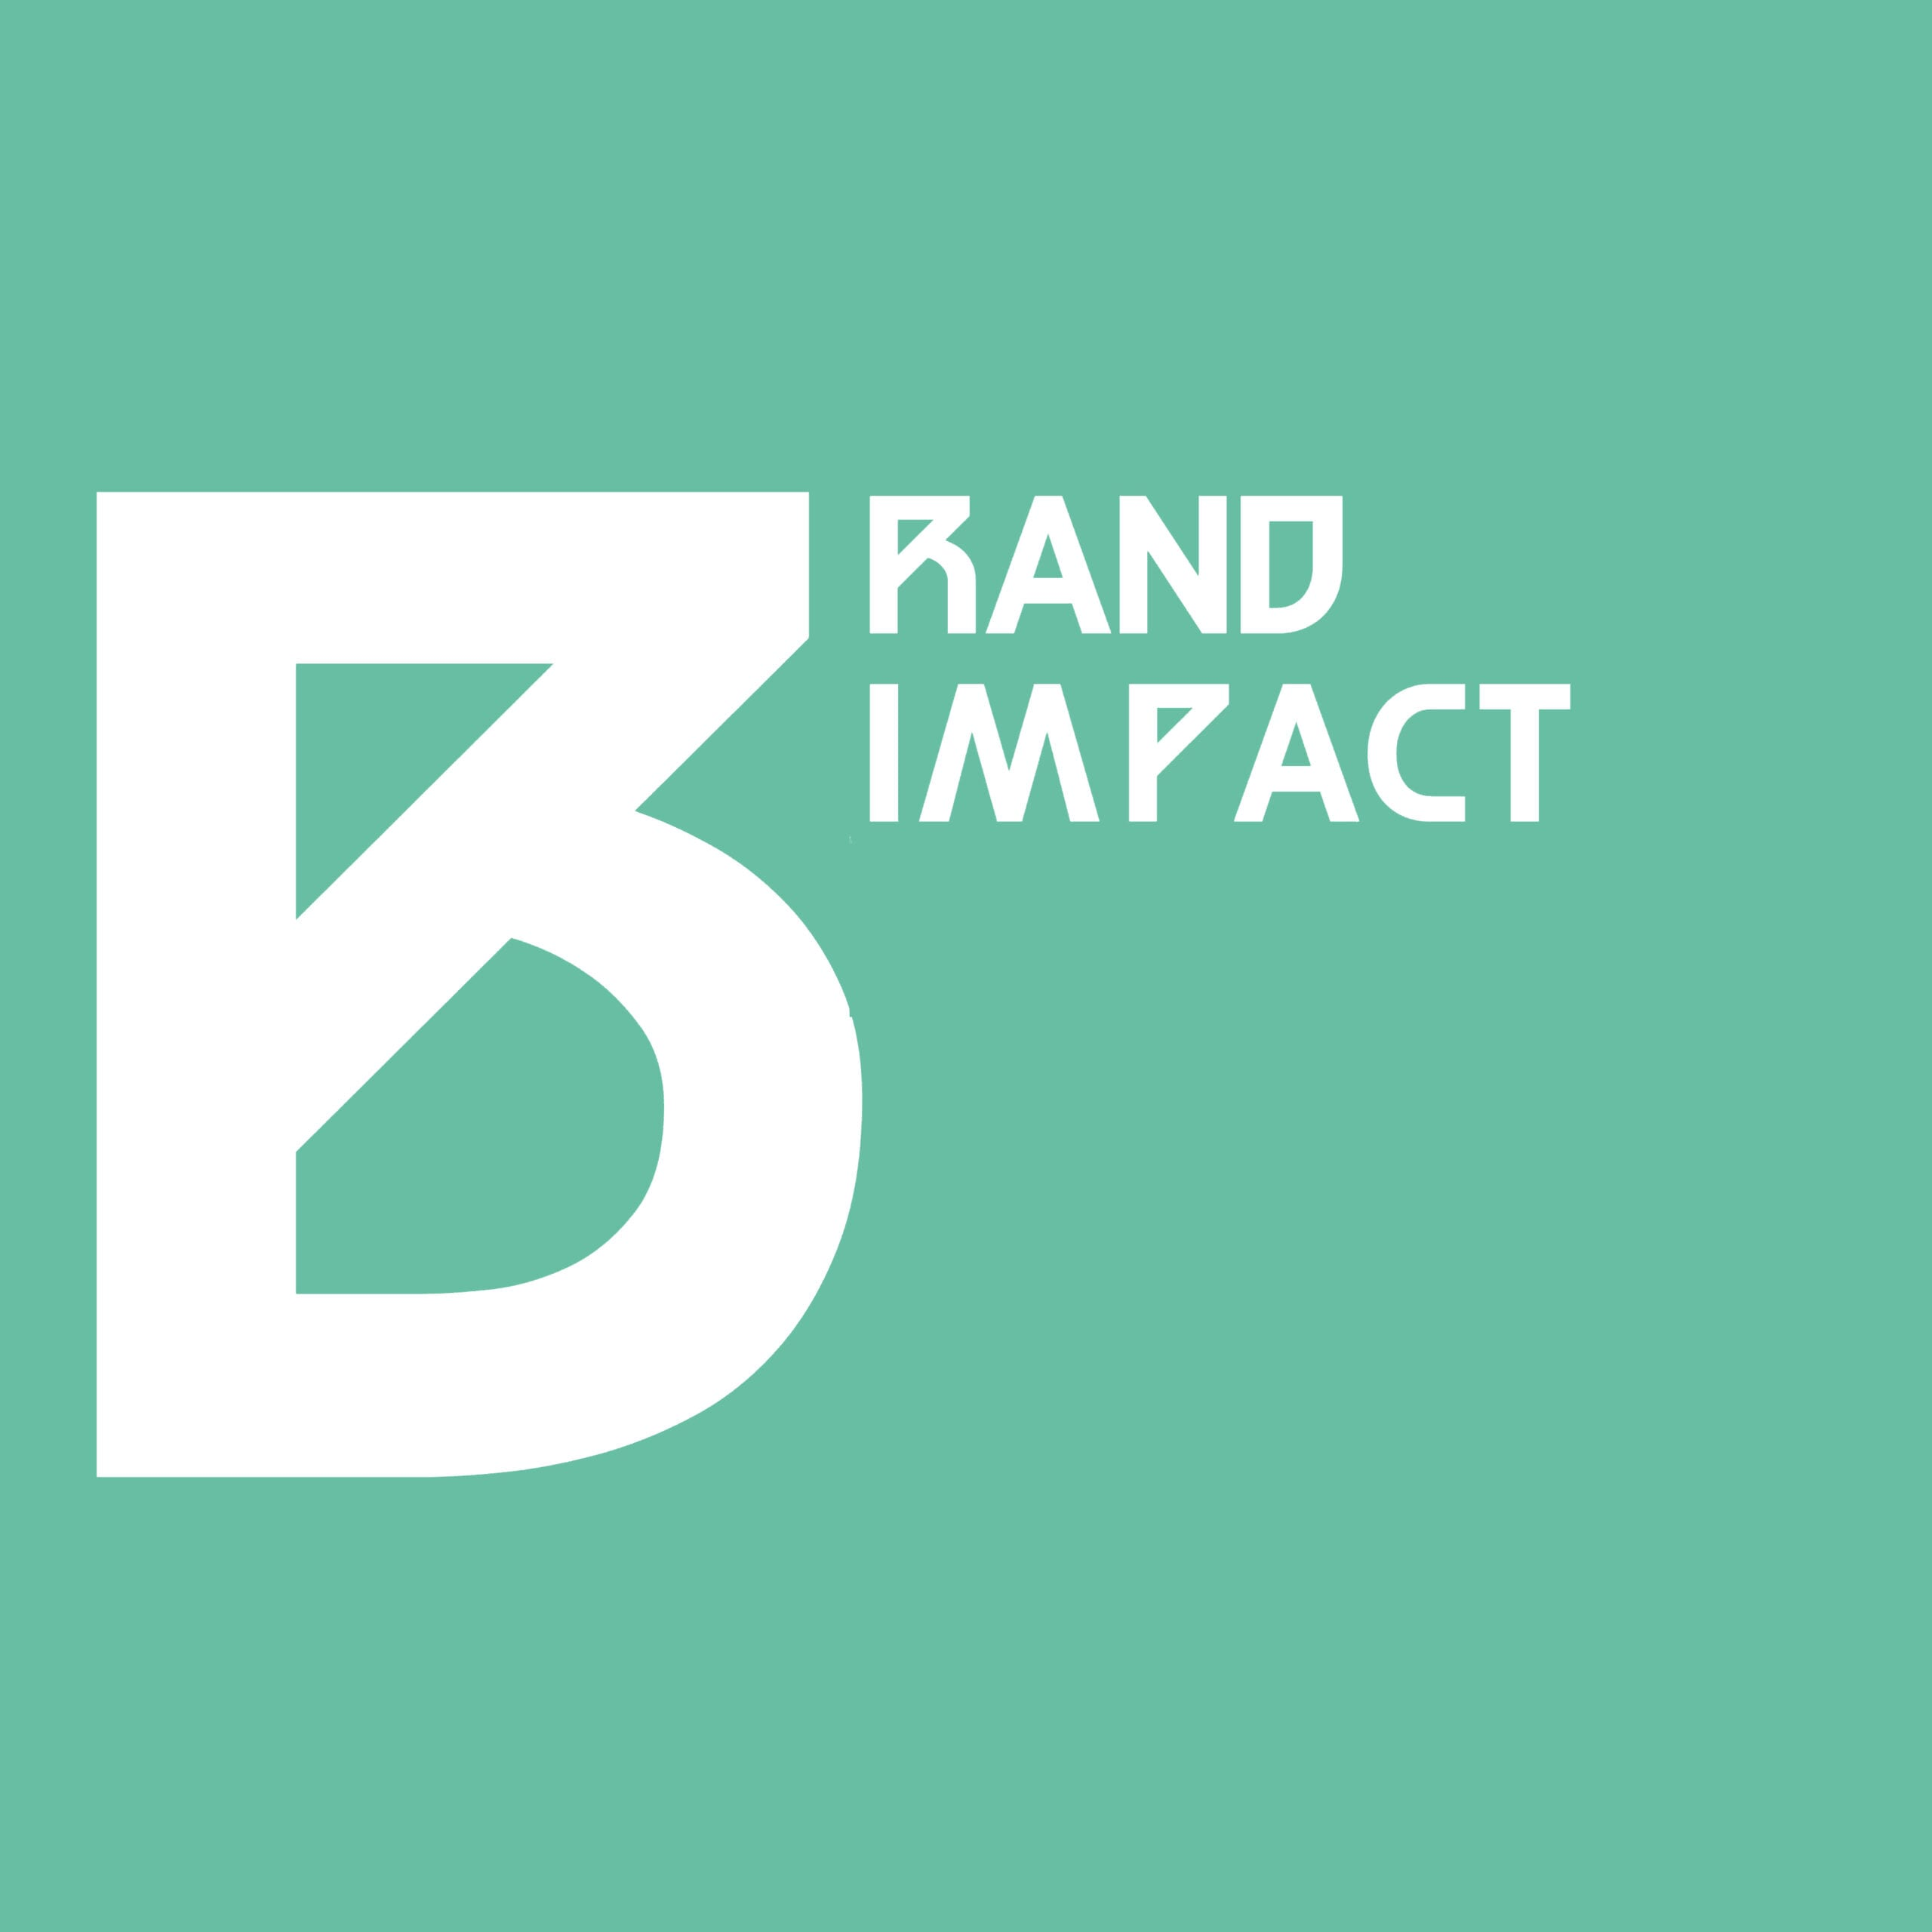 Brand Impact - Branding A Better World